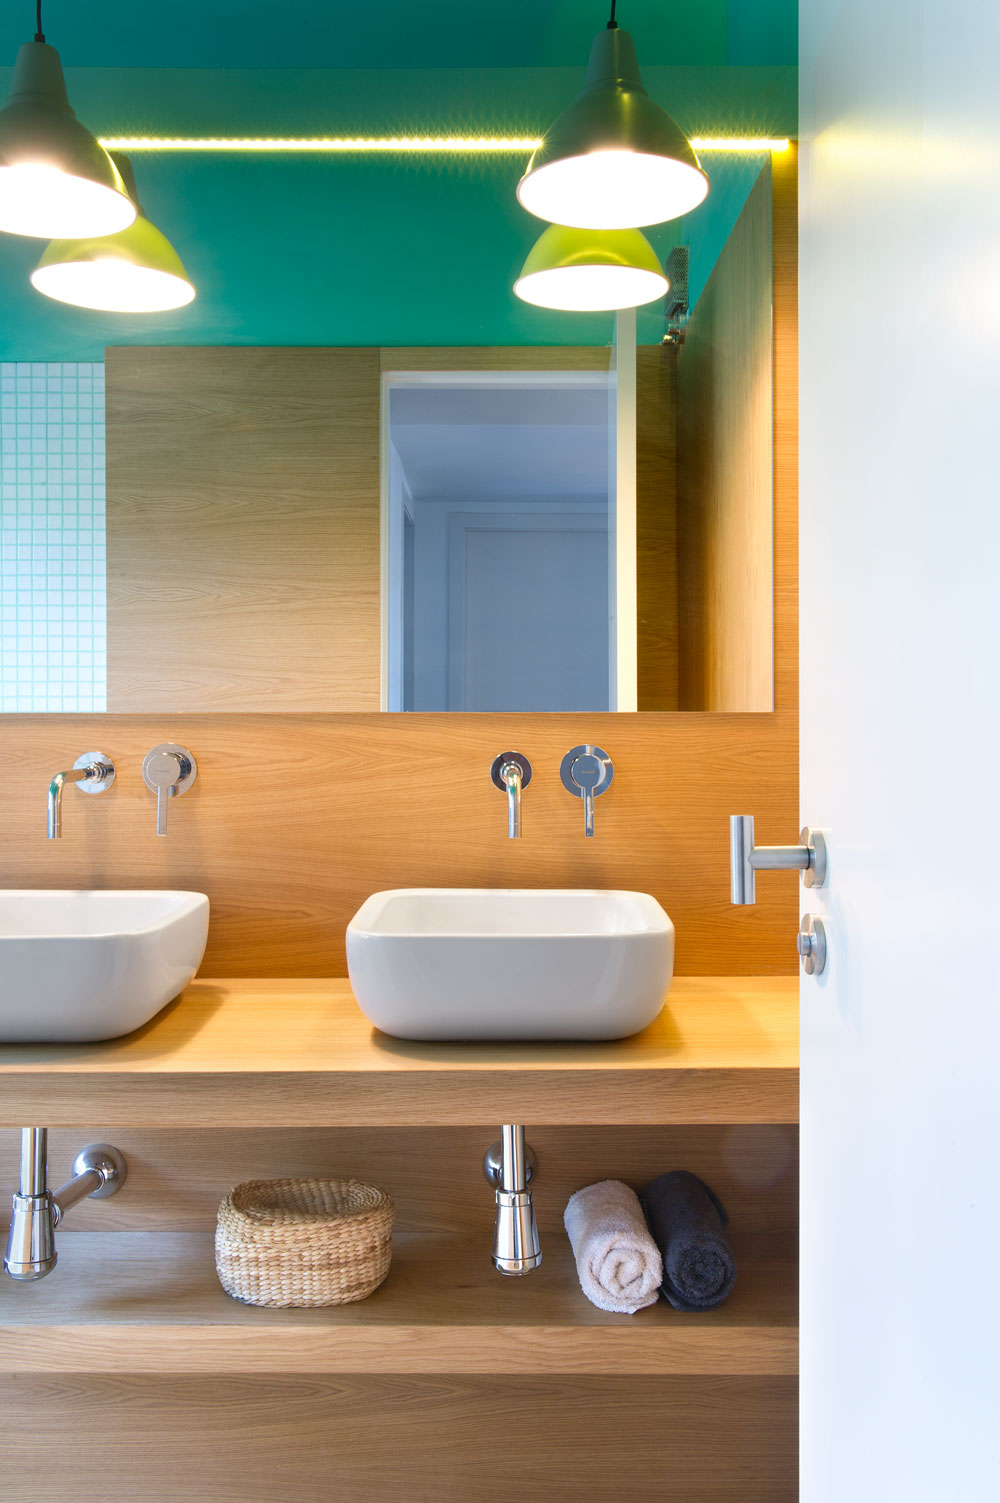 A pair of sinks symmetrically installed on a wooden counter top with a shelf underneath for towels and other toiletries.